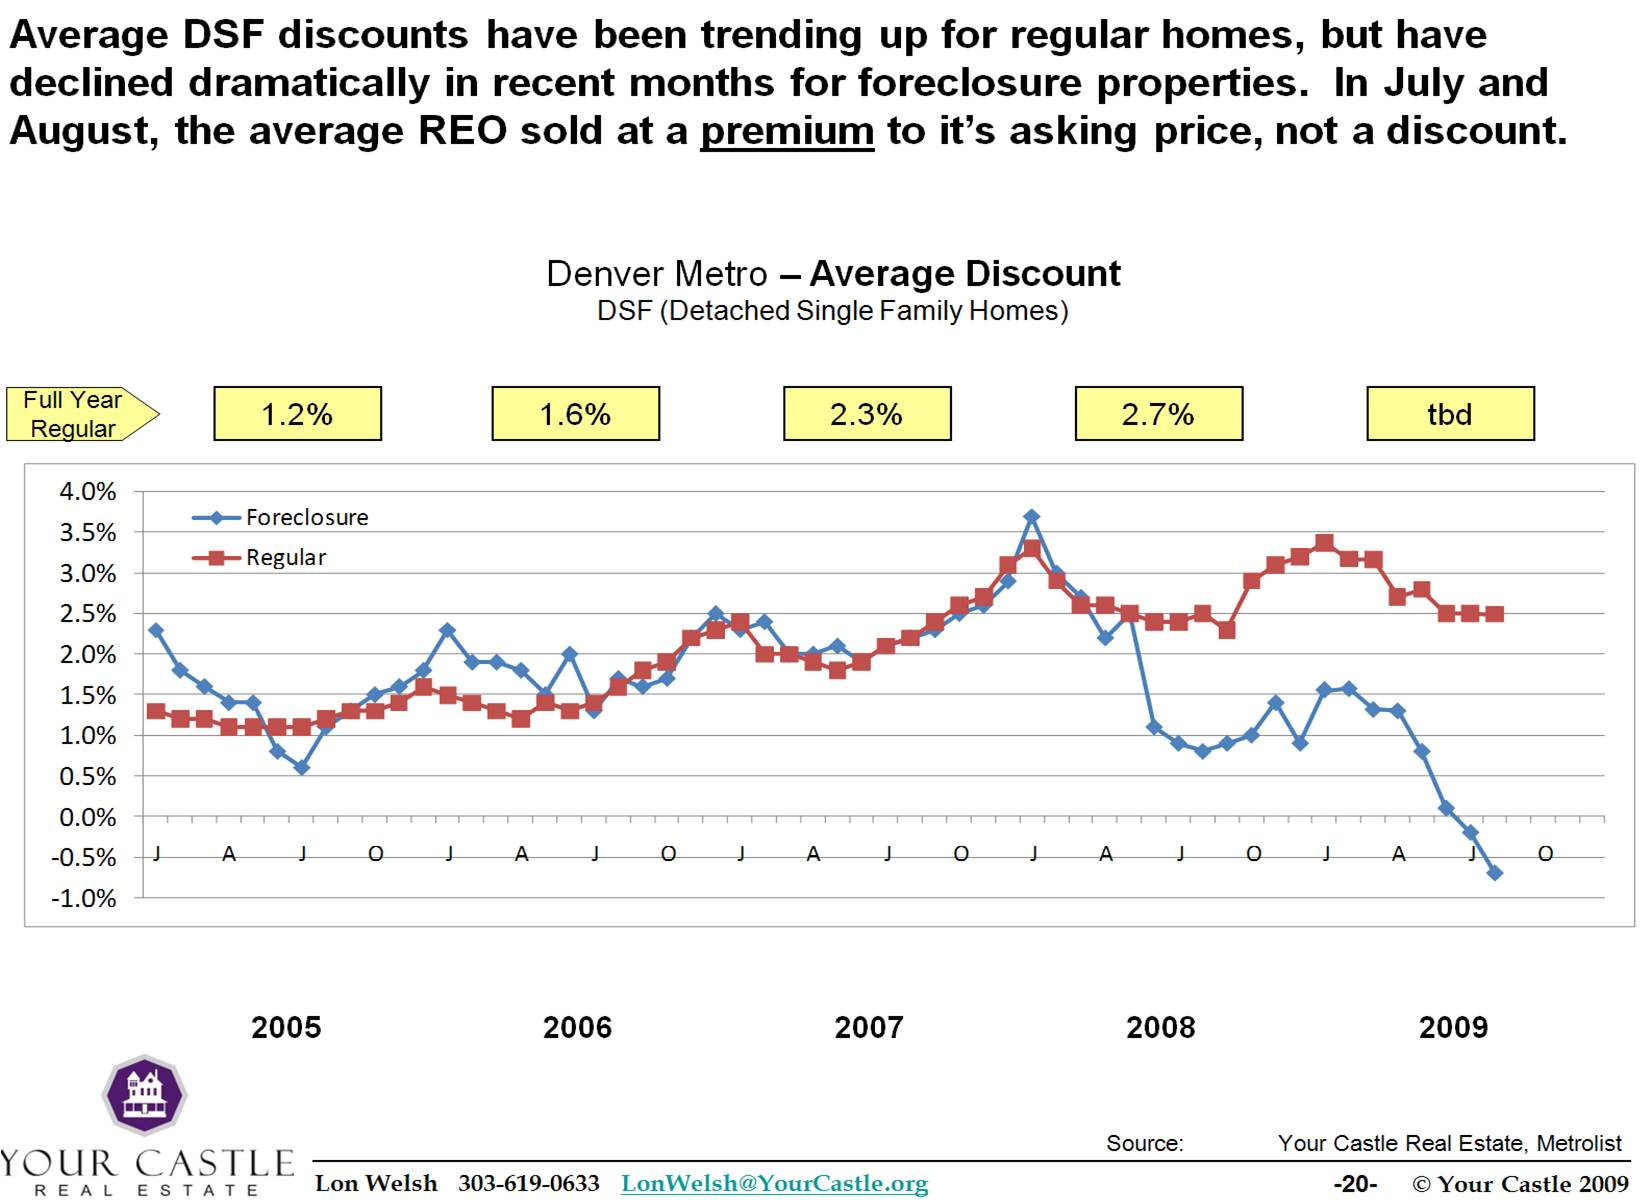 09-0907 Discount trends - regular vs REO